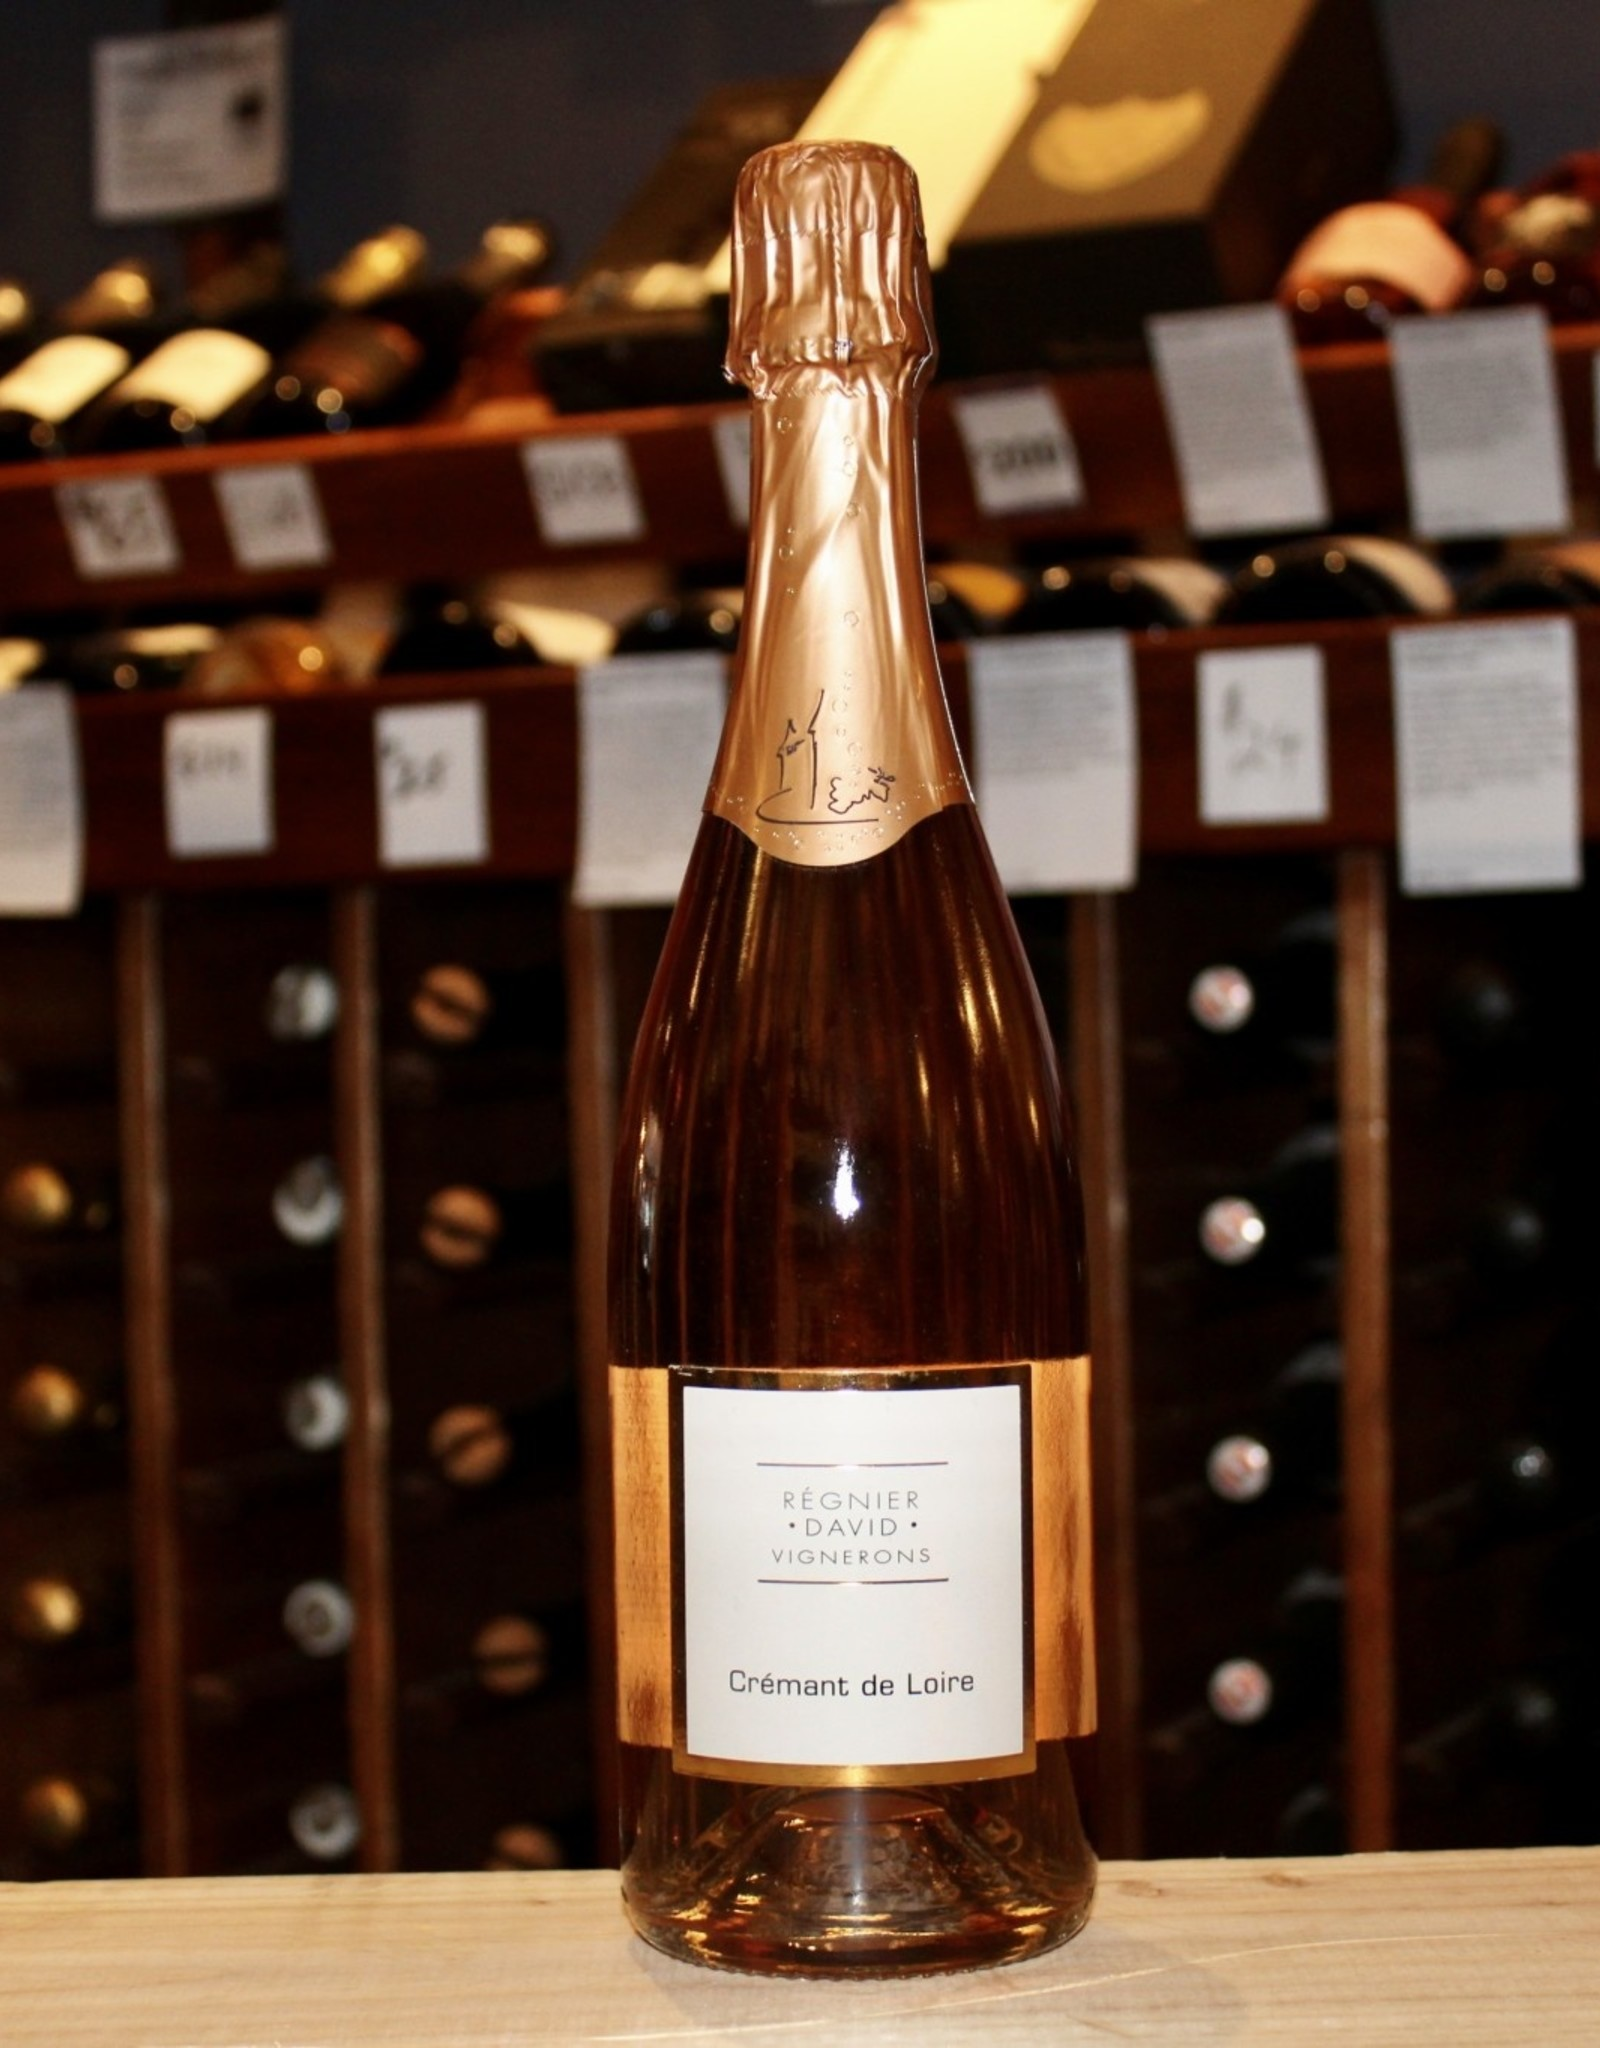 Wine NV Regnier David Vignerons Cremant de Loire Extra Brut Rose - Loire Valley, France (750ml)